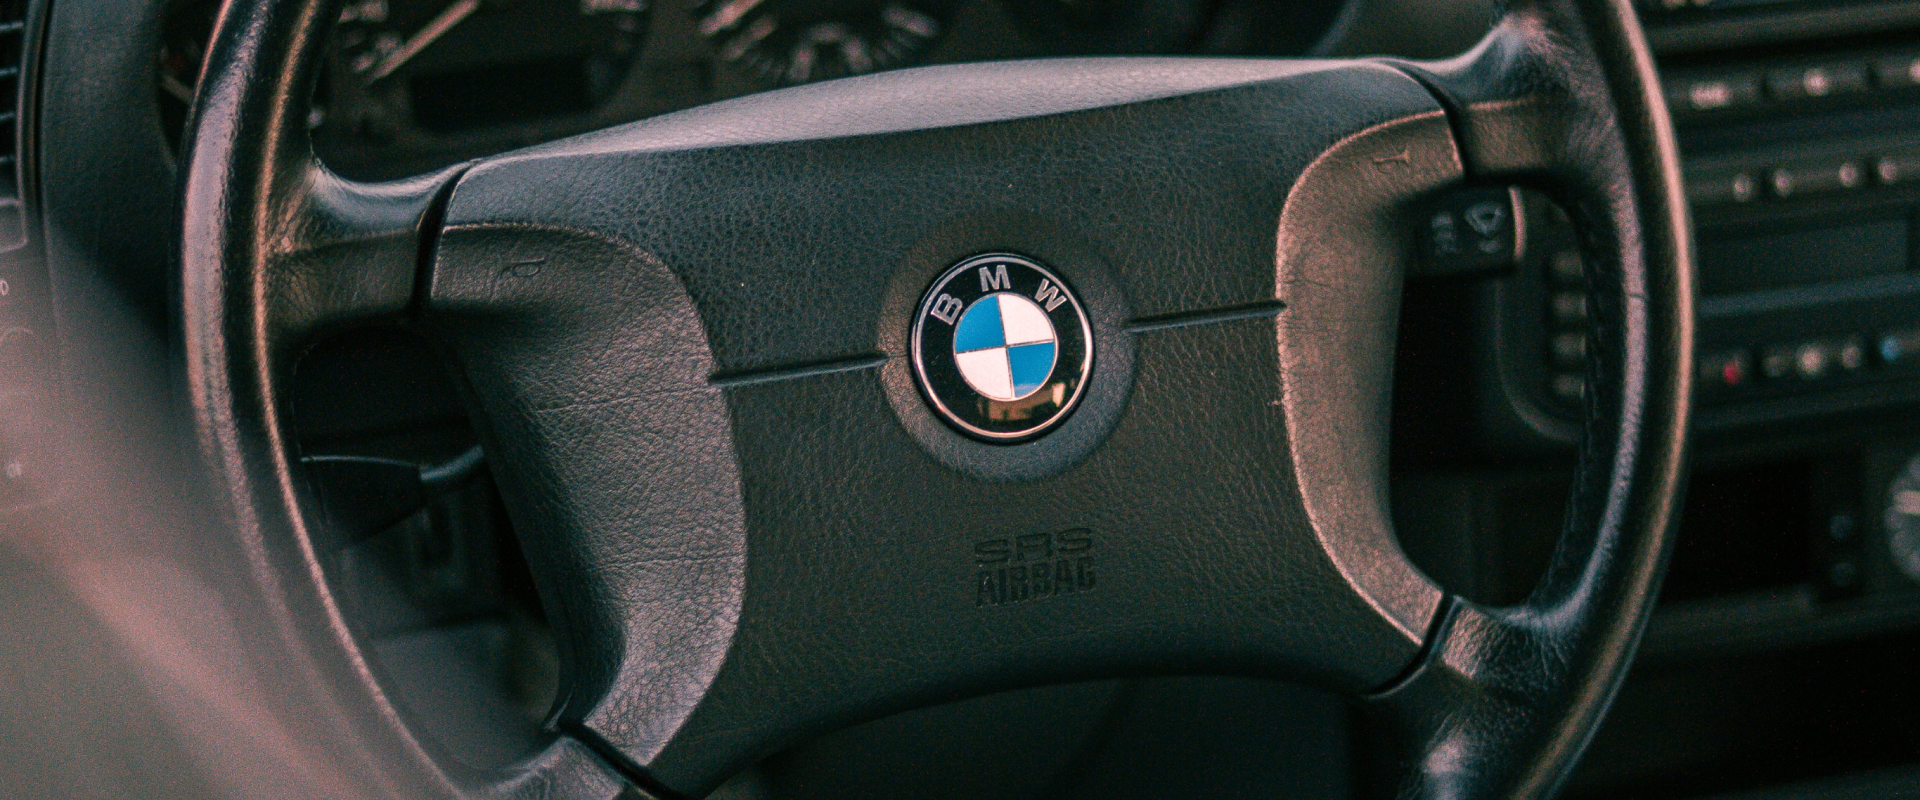 How to Inspect a Second-Hand Vehicle's Airbag Systems